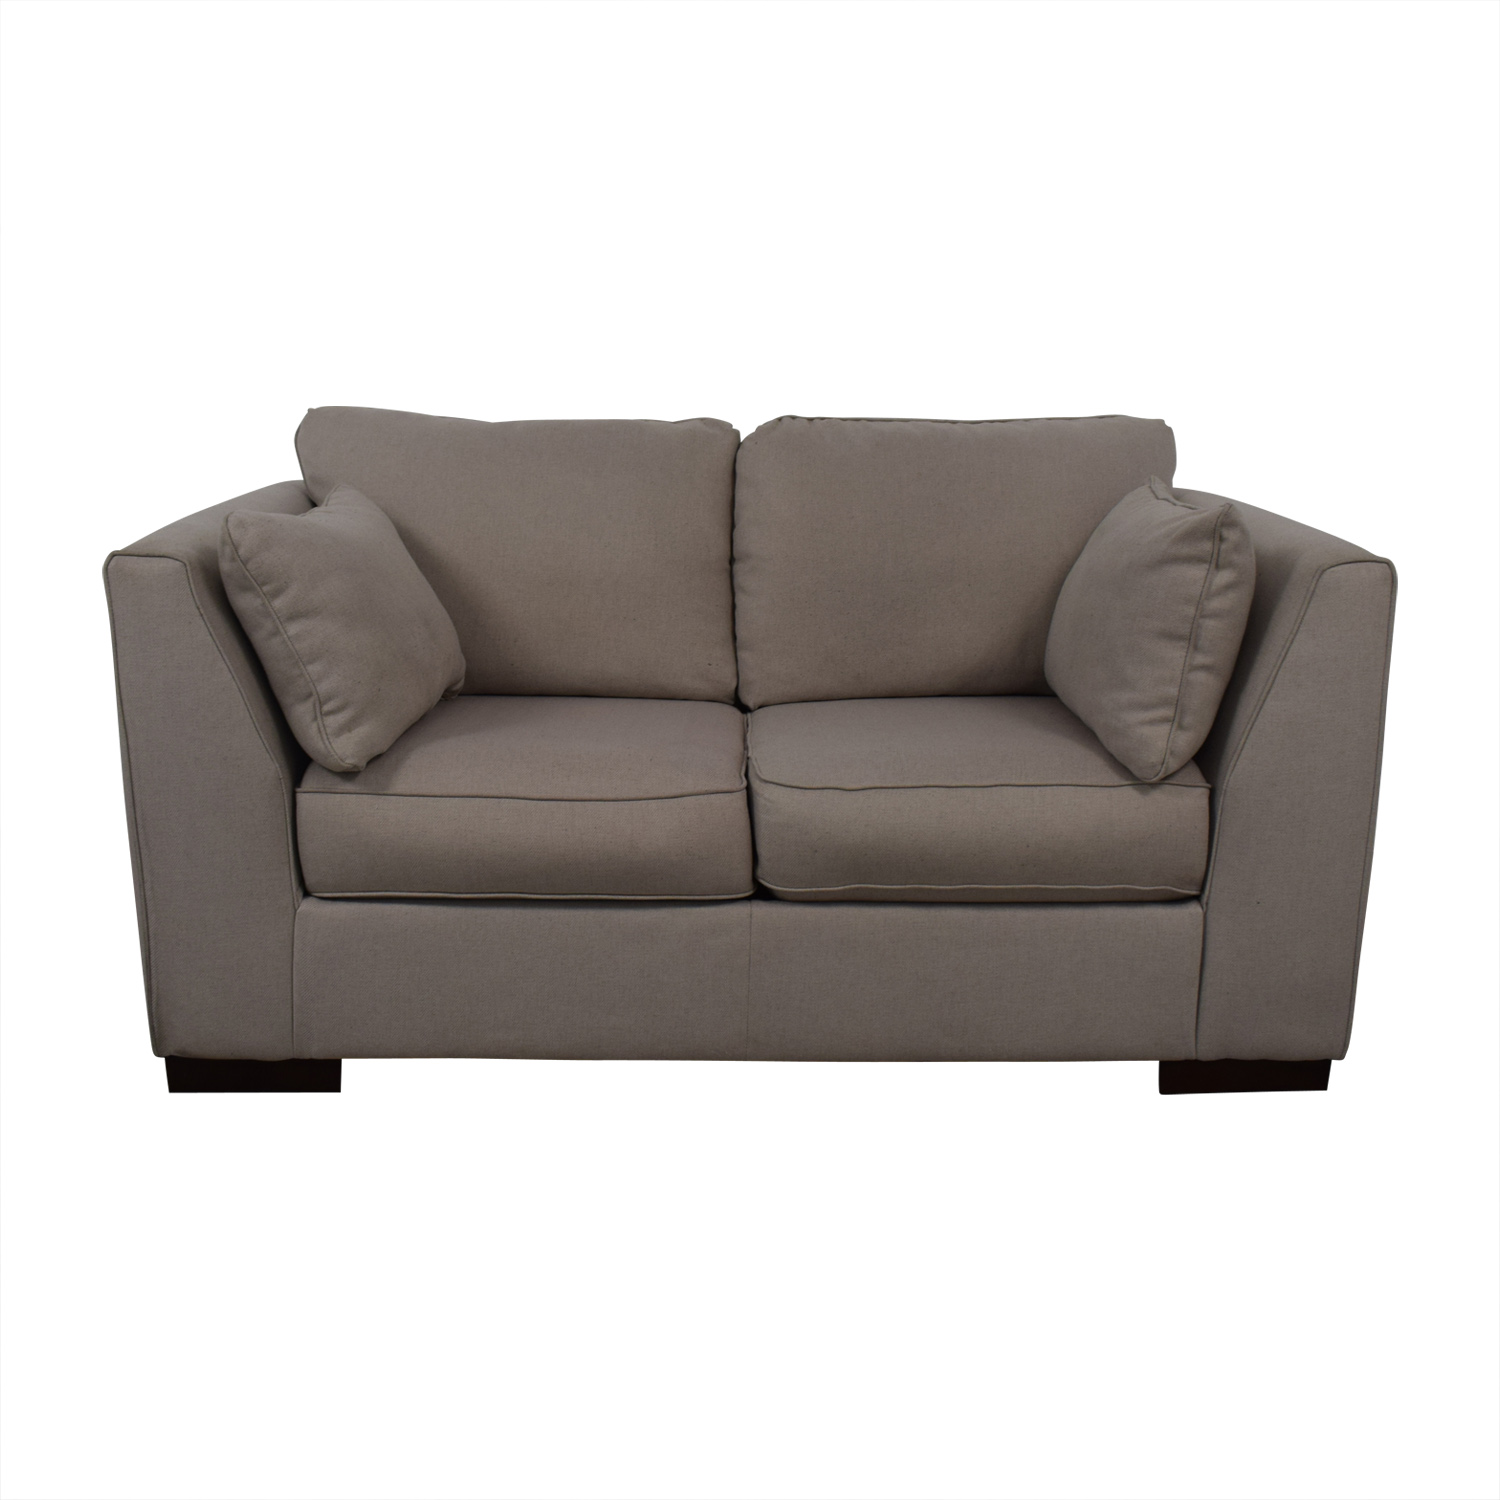 Ashley Furniture Ashley Furniture Pierin Loveseat nj